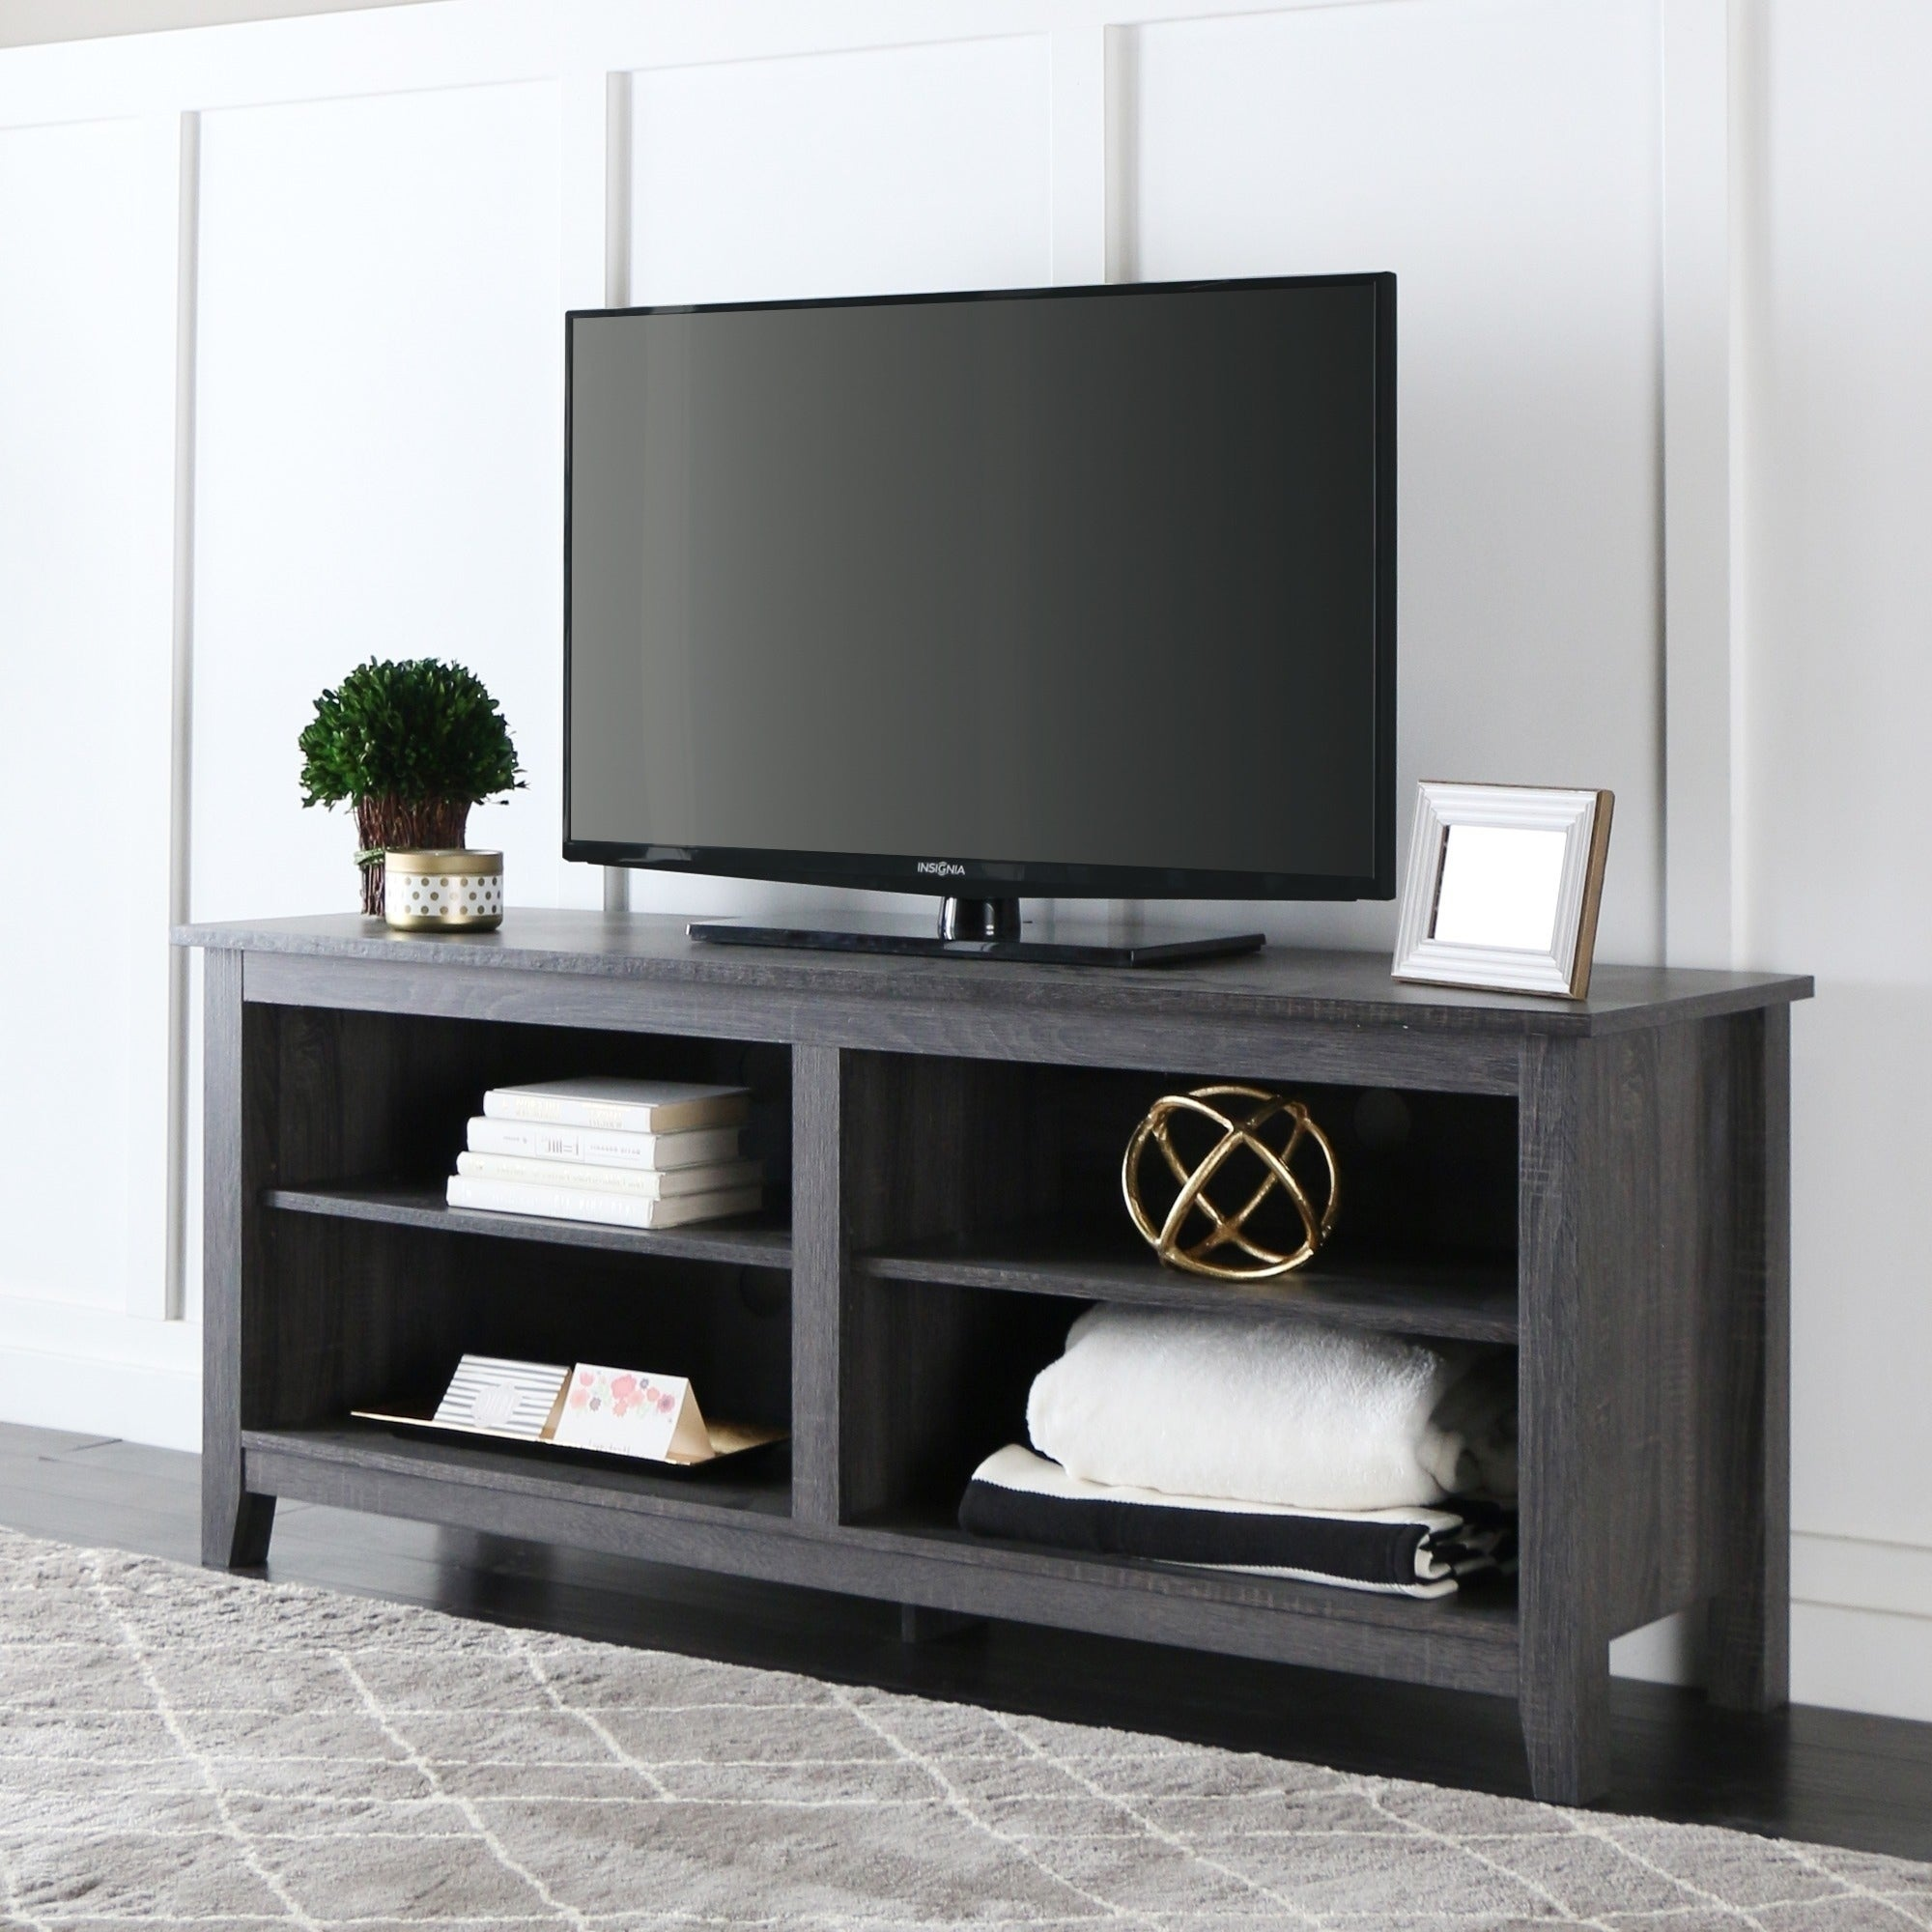 Shop Porch Den Harmony 58 Inch Wood Charcoal Grey Tv Stand Free